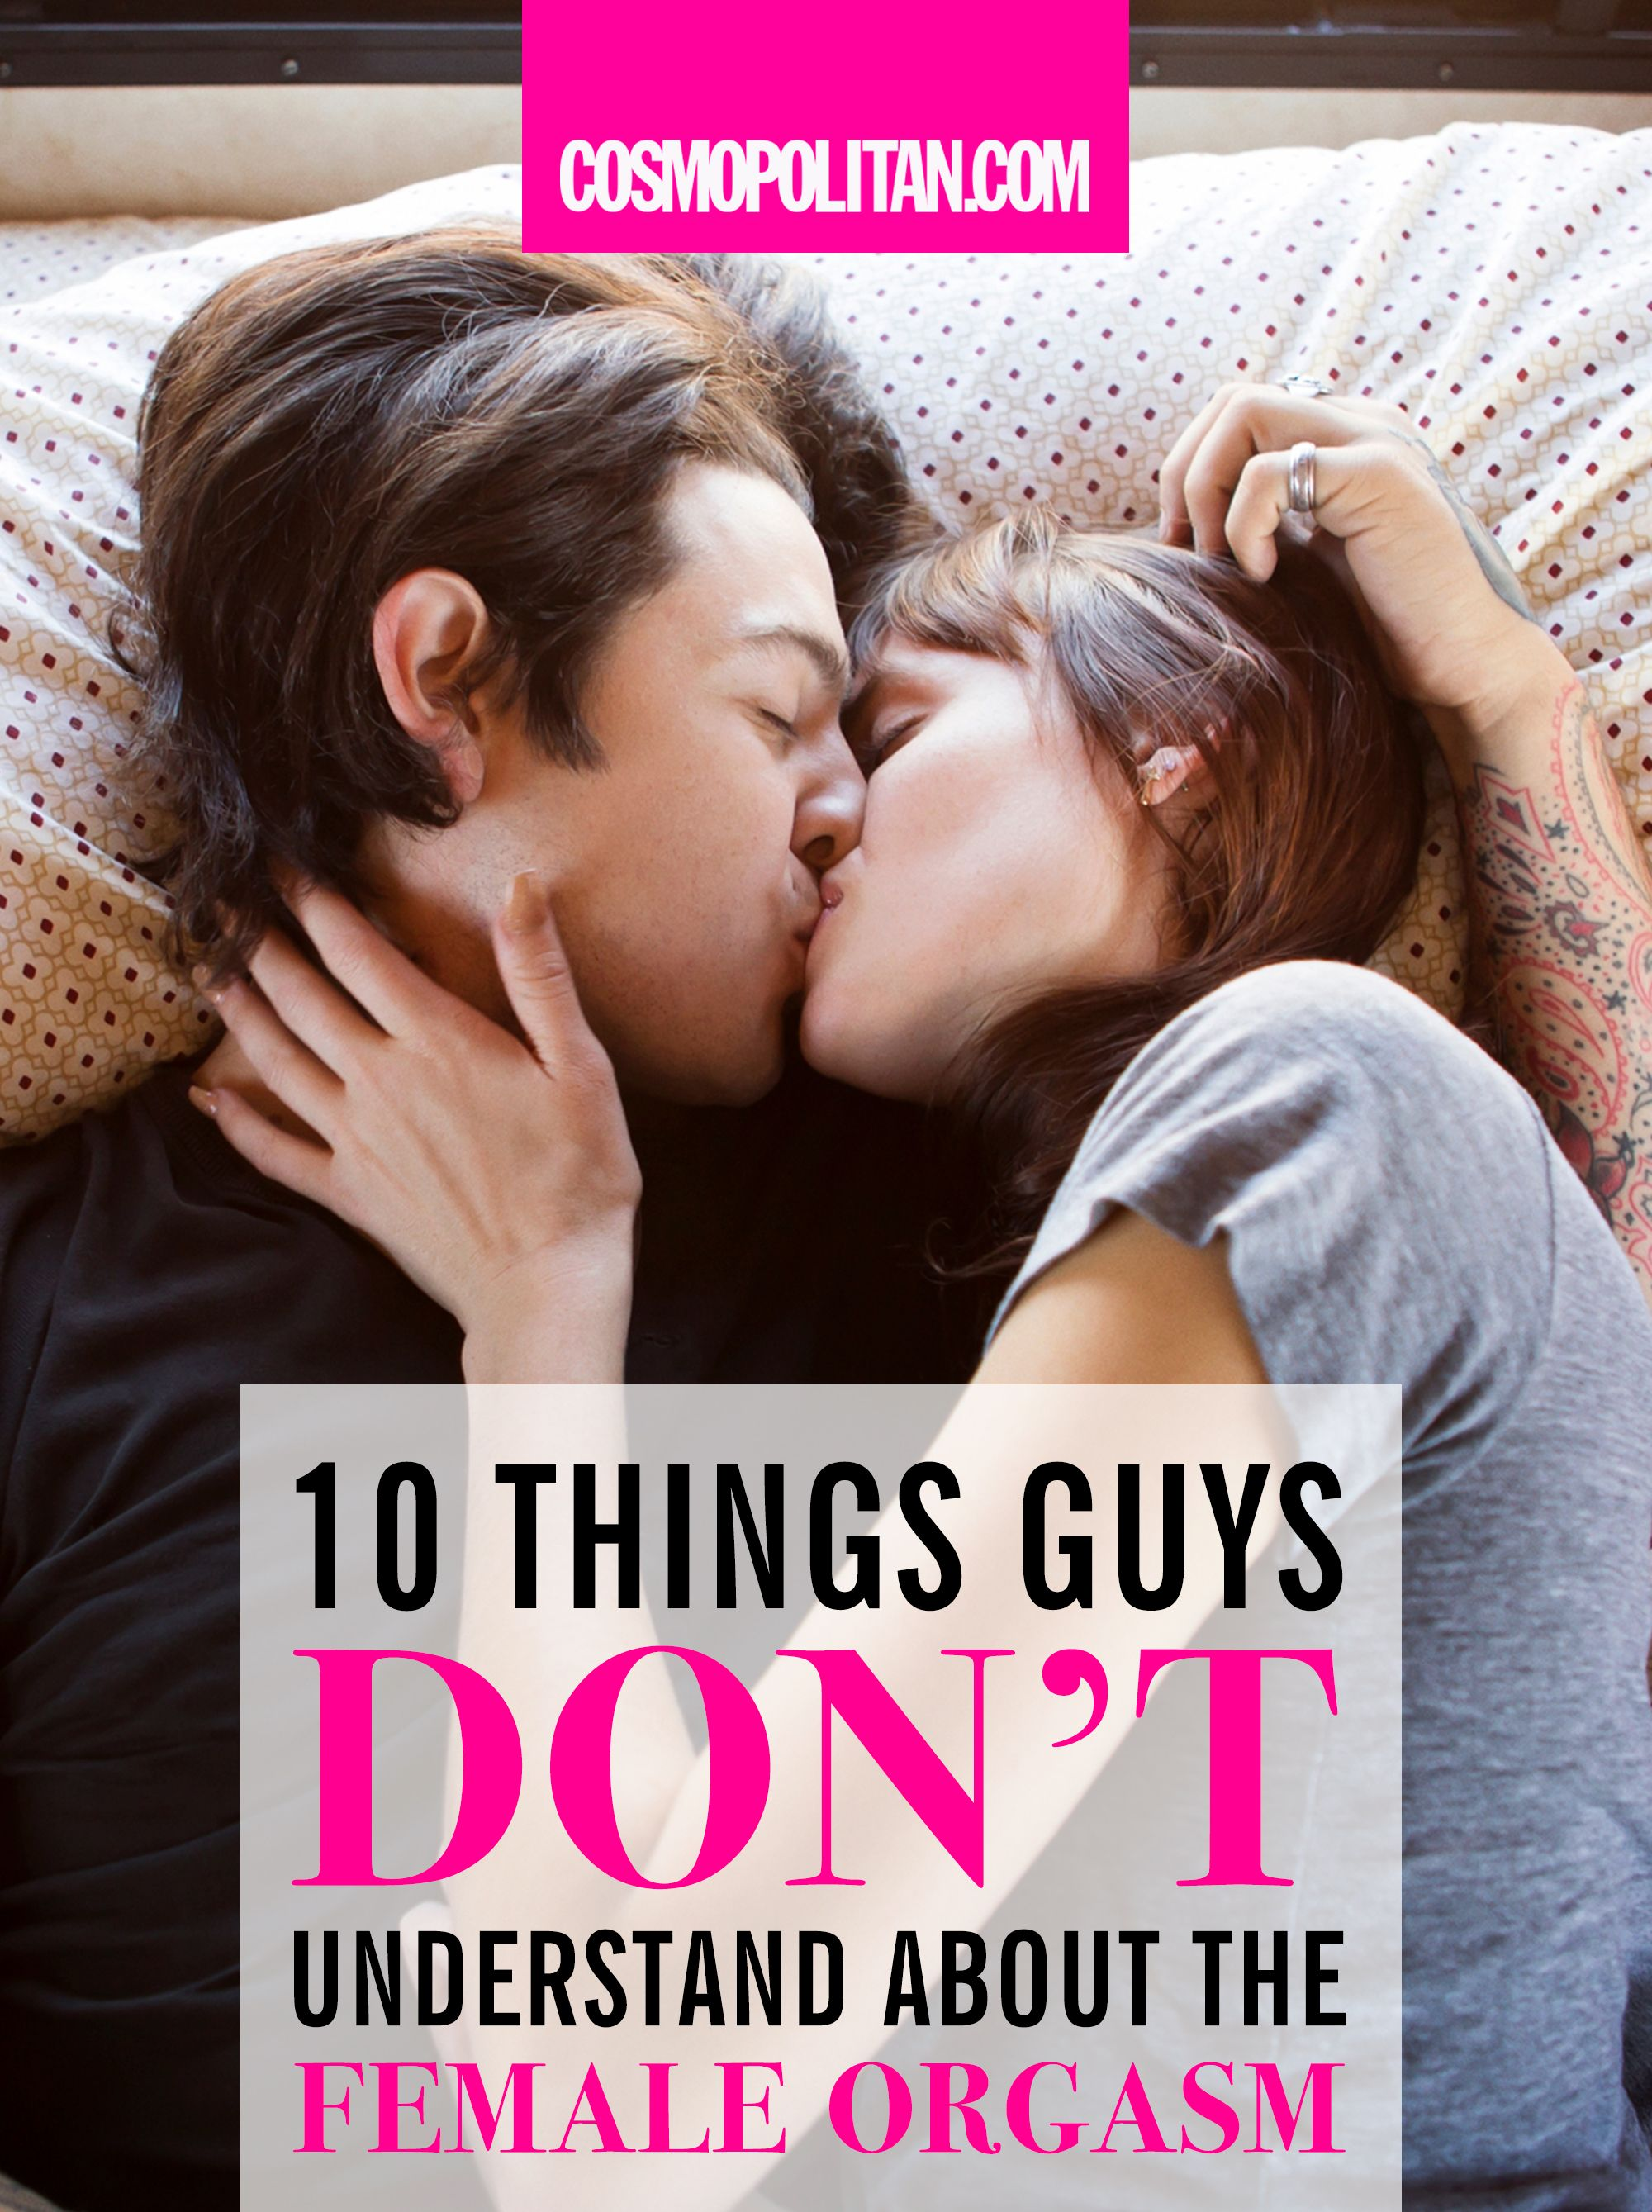 Cosmo dating advice for men